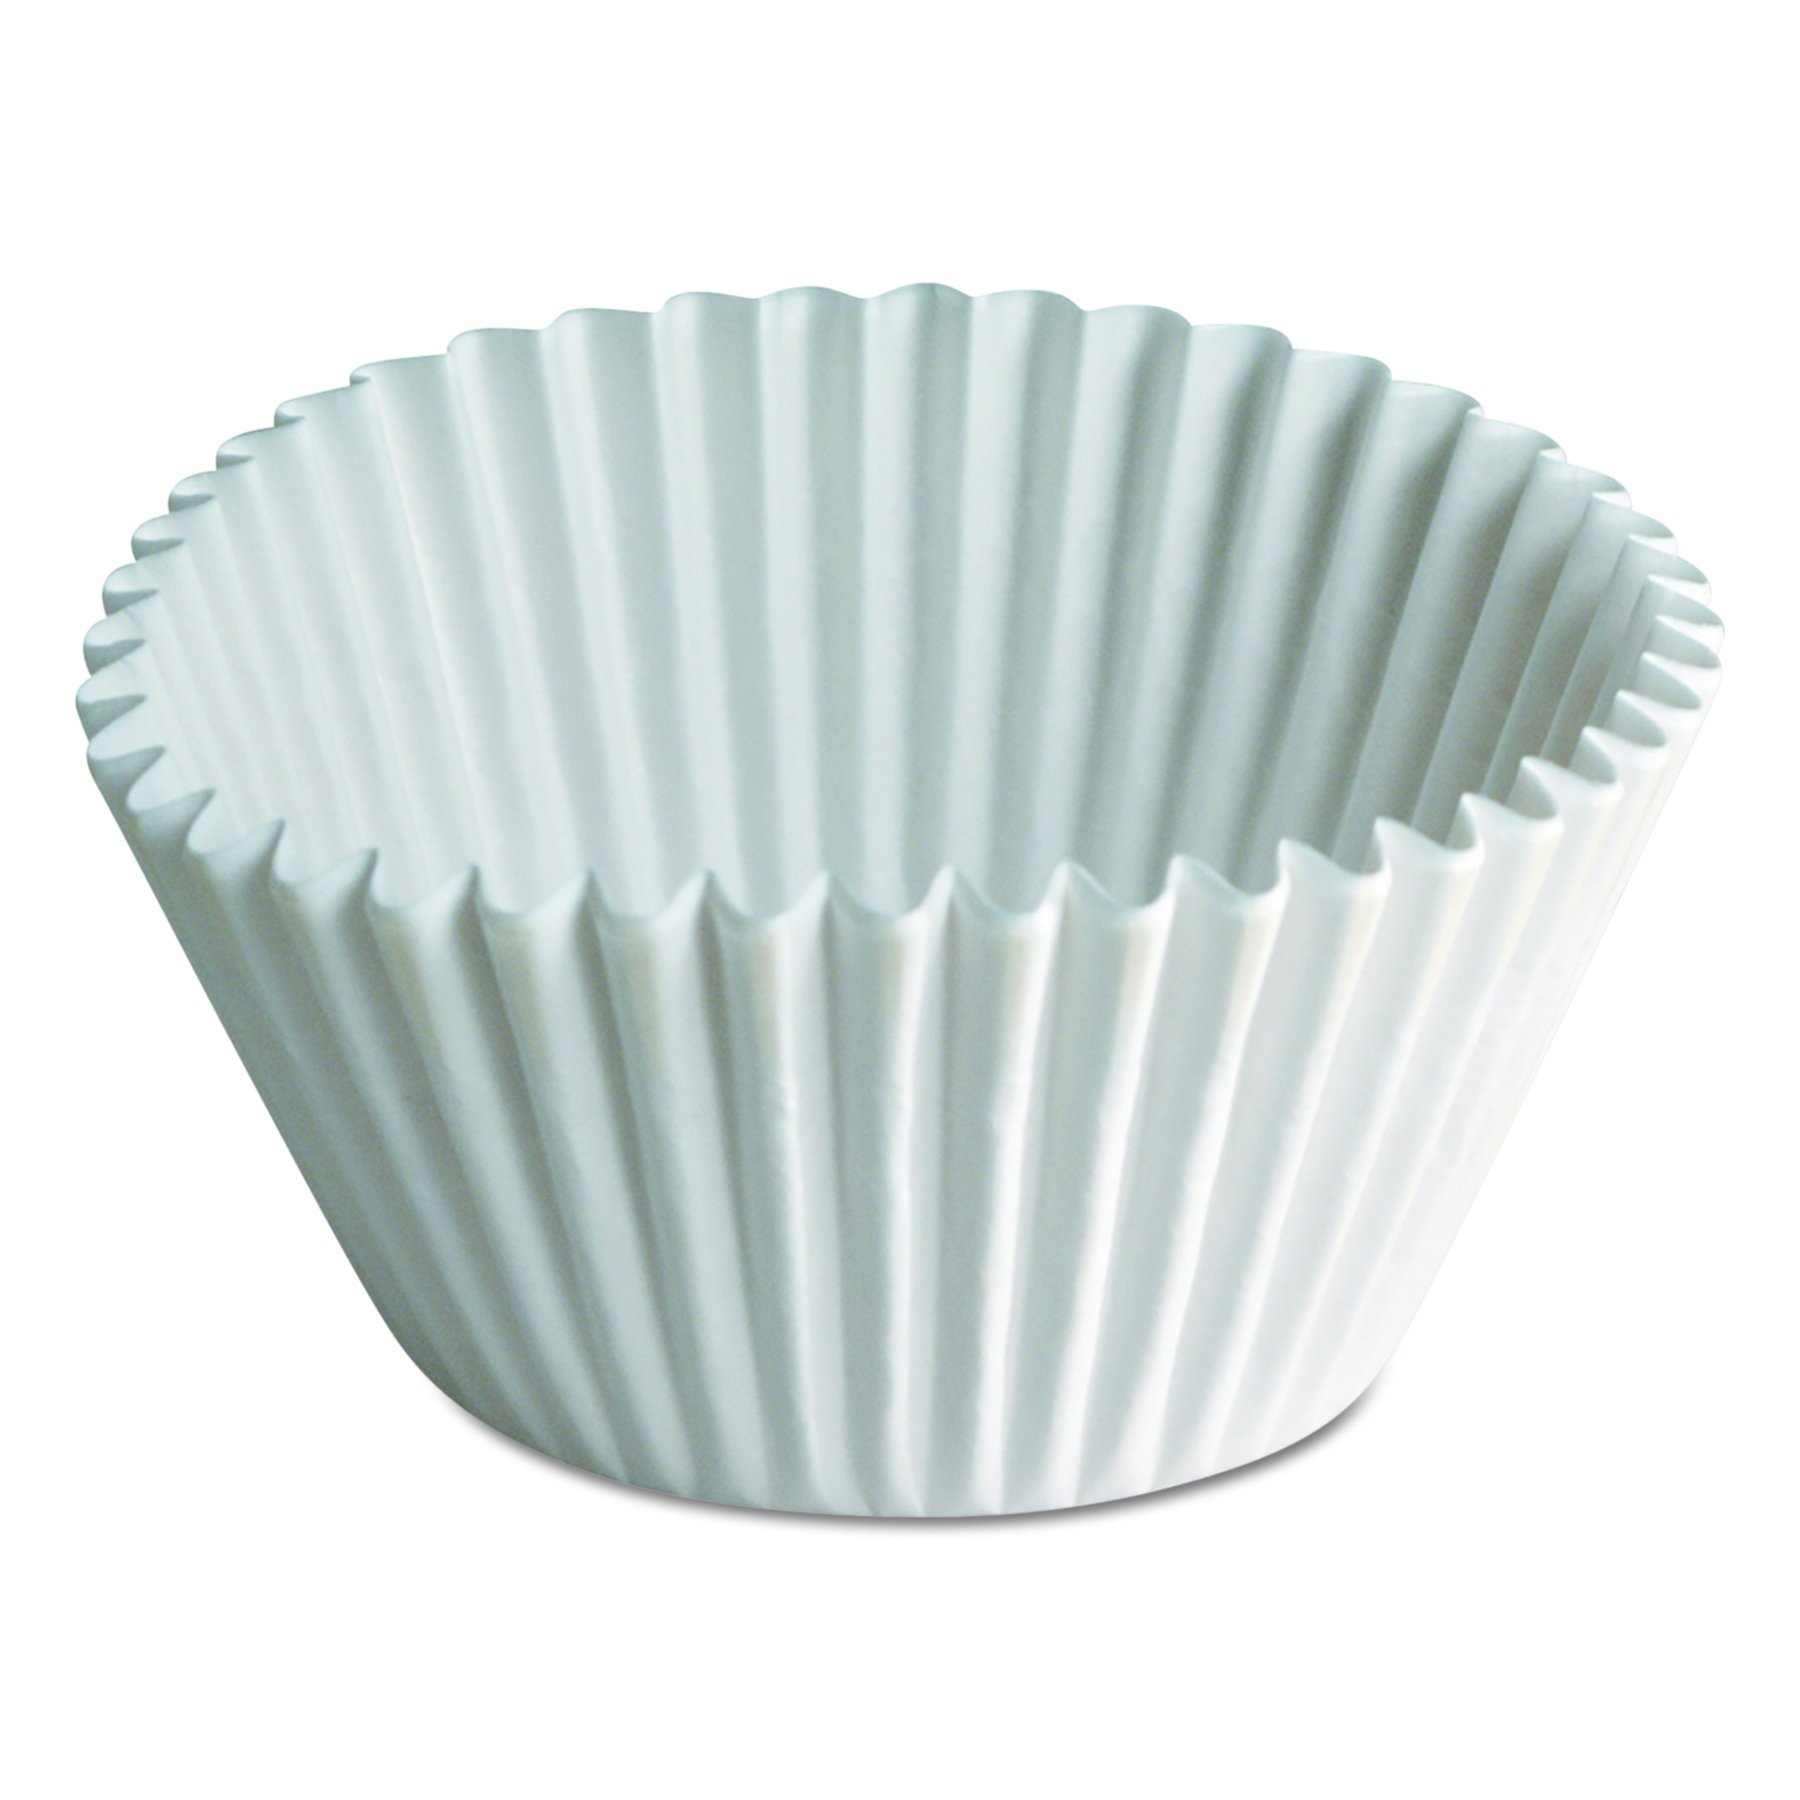 Hoffmaster BL350-6.5 6-1/2 Inch White Dry Fluted Paper Bake Cup 500-Pack (Case of 10)